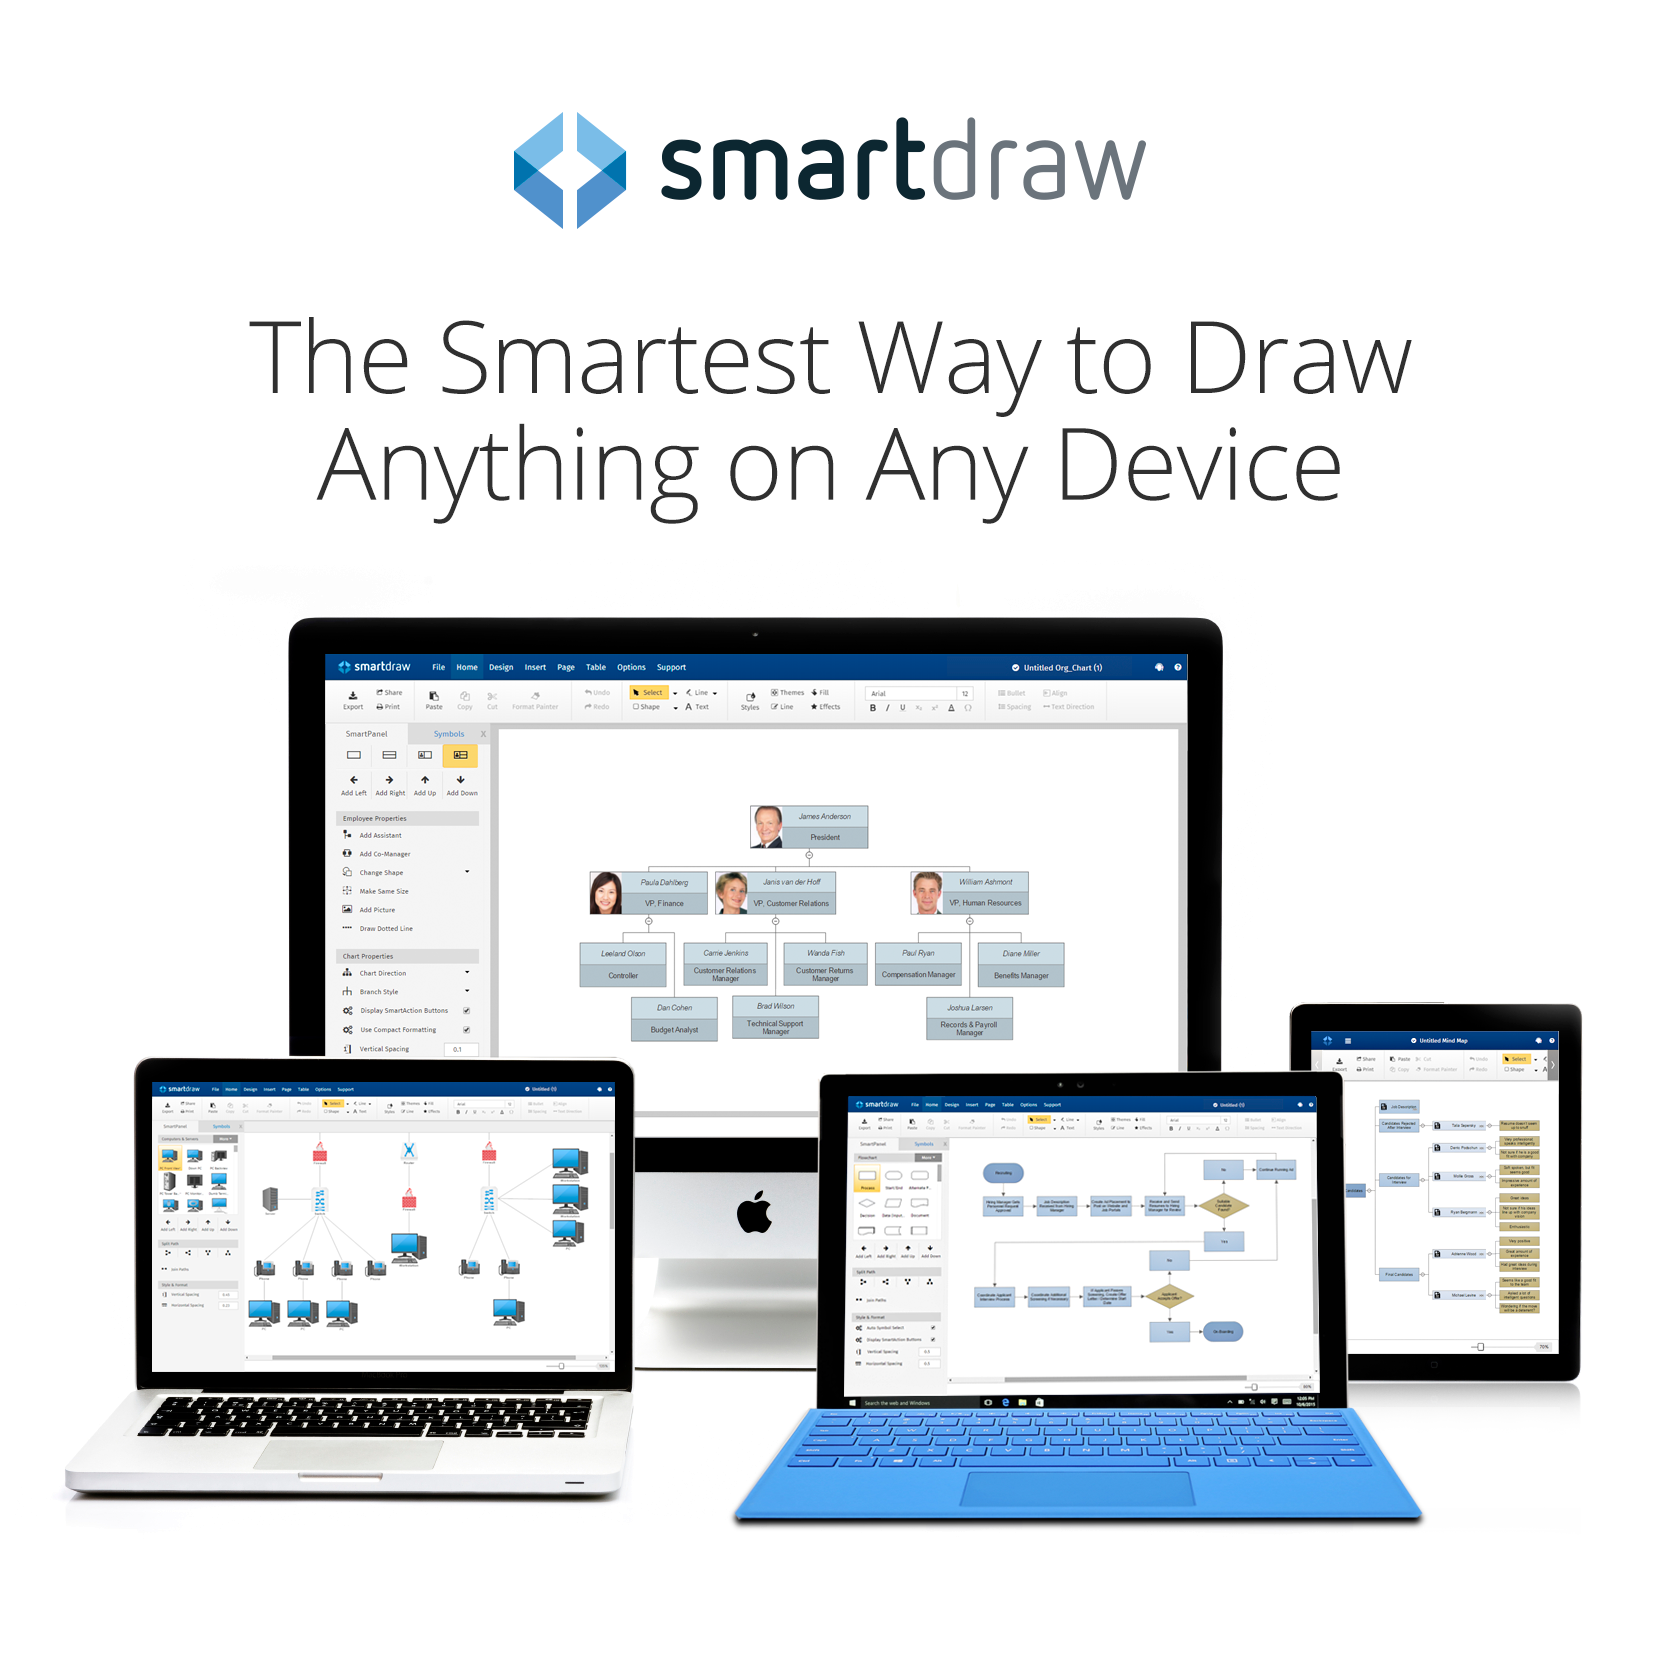 download smartdraw on multiple devices with logo - Smartdraw Software Llc